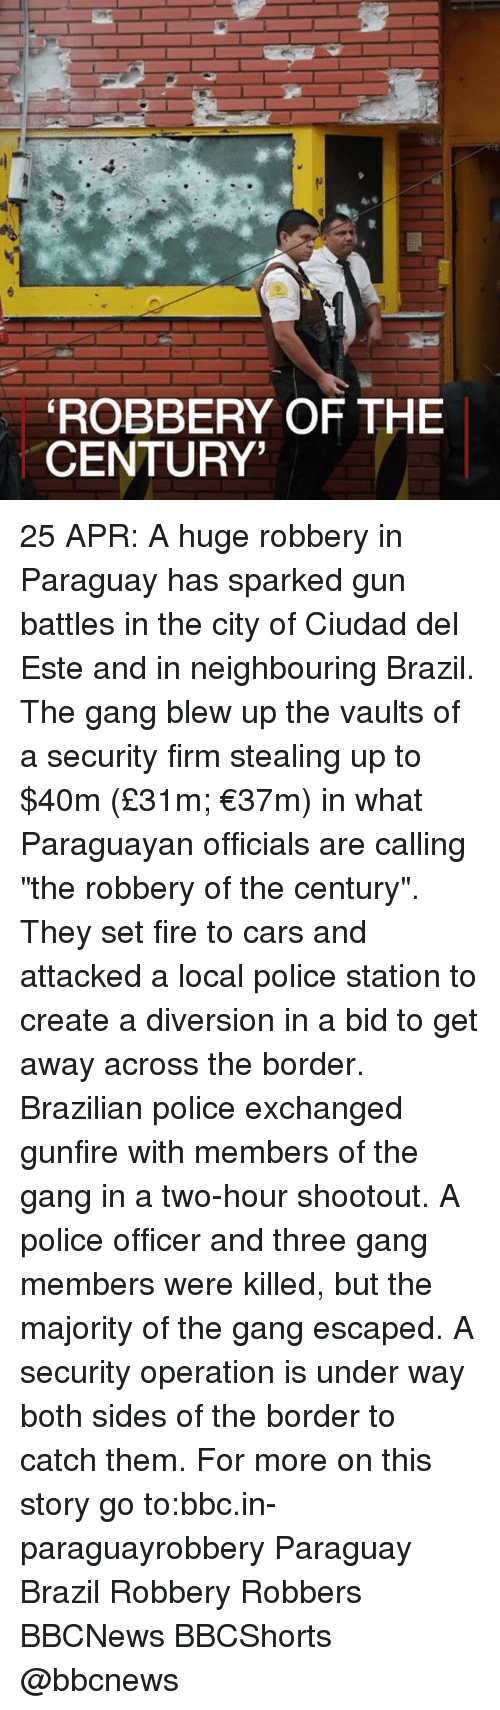 """Cars, Fire, and Memes: ROBBERY OF THE  CENTURY' 25 APR: A huge robbery in Paraguay has sparked gun battles in the city of Ciudad del Este and in neighbouring Brazil. The gang blew up the vaults of a security firm stealing up to $40m (£31m; €37m) in what Paraguayan officials are calling """"the robbery of the century"""". They set fire to cars and attacked a local police station to create a diversion in a bid to get away across the border. Brazilian police exchanged gunfire with members of the gang in a two-hour shootout. A police officer and three gang members were killed, but the majority of the gang escaped. A security operation is under way both sides of the border to catch them. For more on this story go to:bbc.in-paraguayrobbery Paraguay Brazil Robbery Robbers BBCNews BBCShorts @bbcnews"""